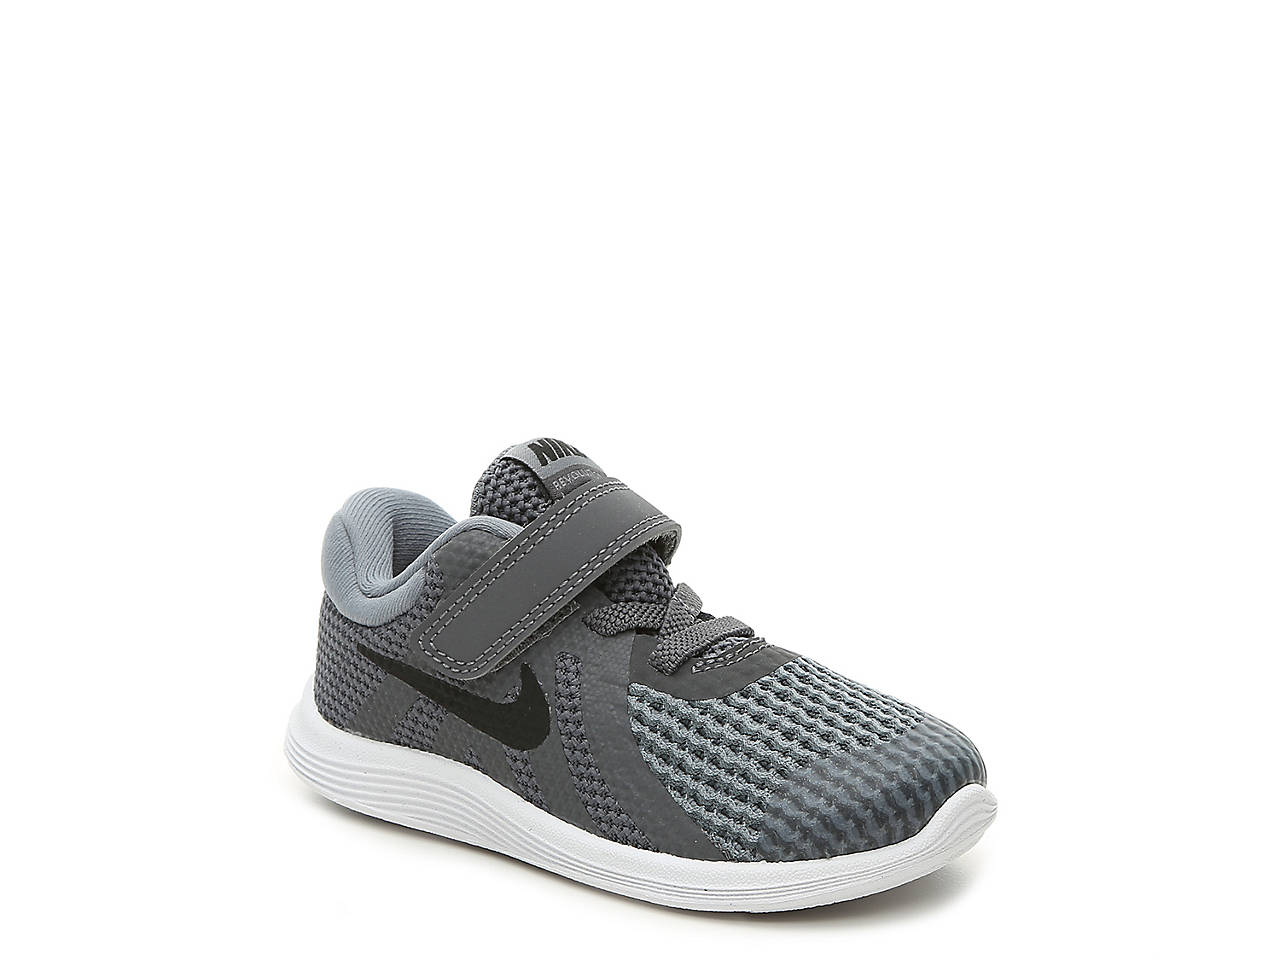 11c6a3dce9dc Nike Revolution 4 Toddler Running Shoe Kids Shoes